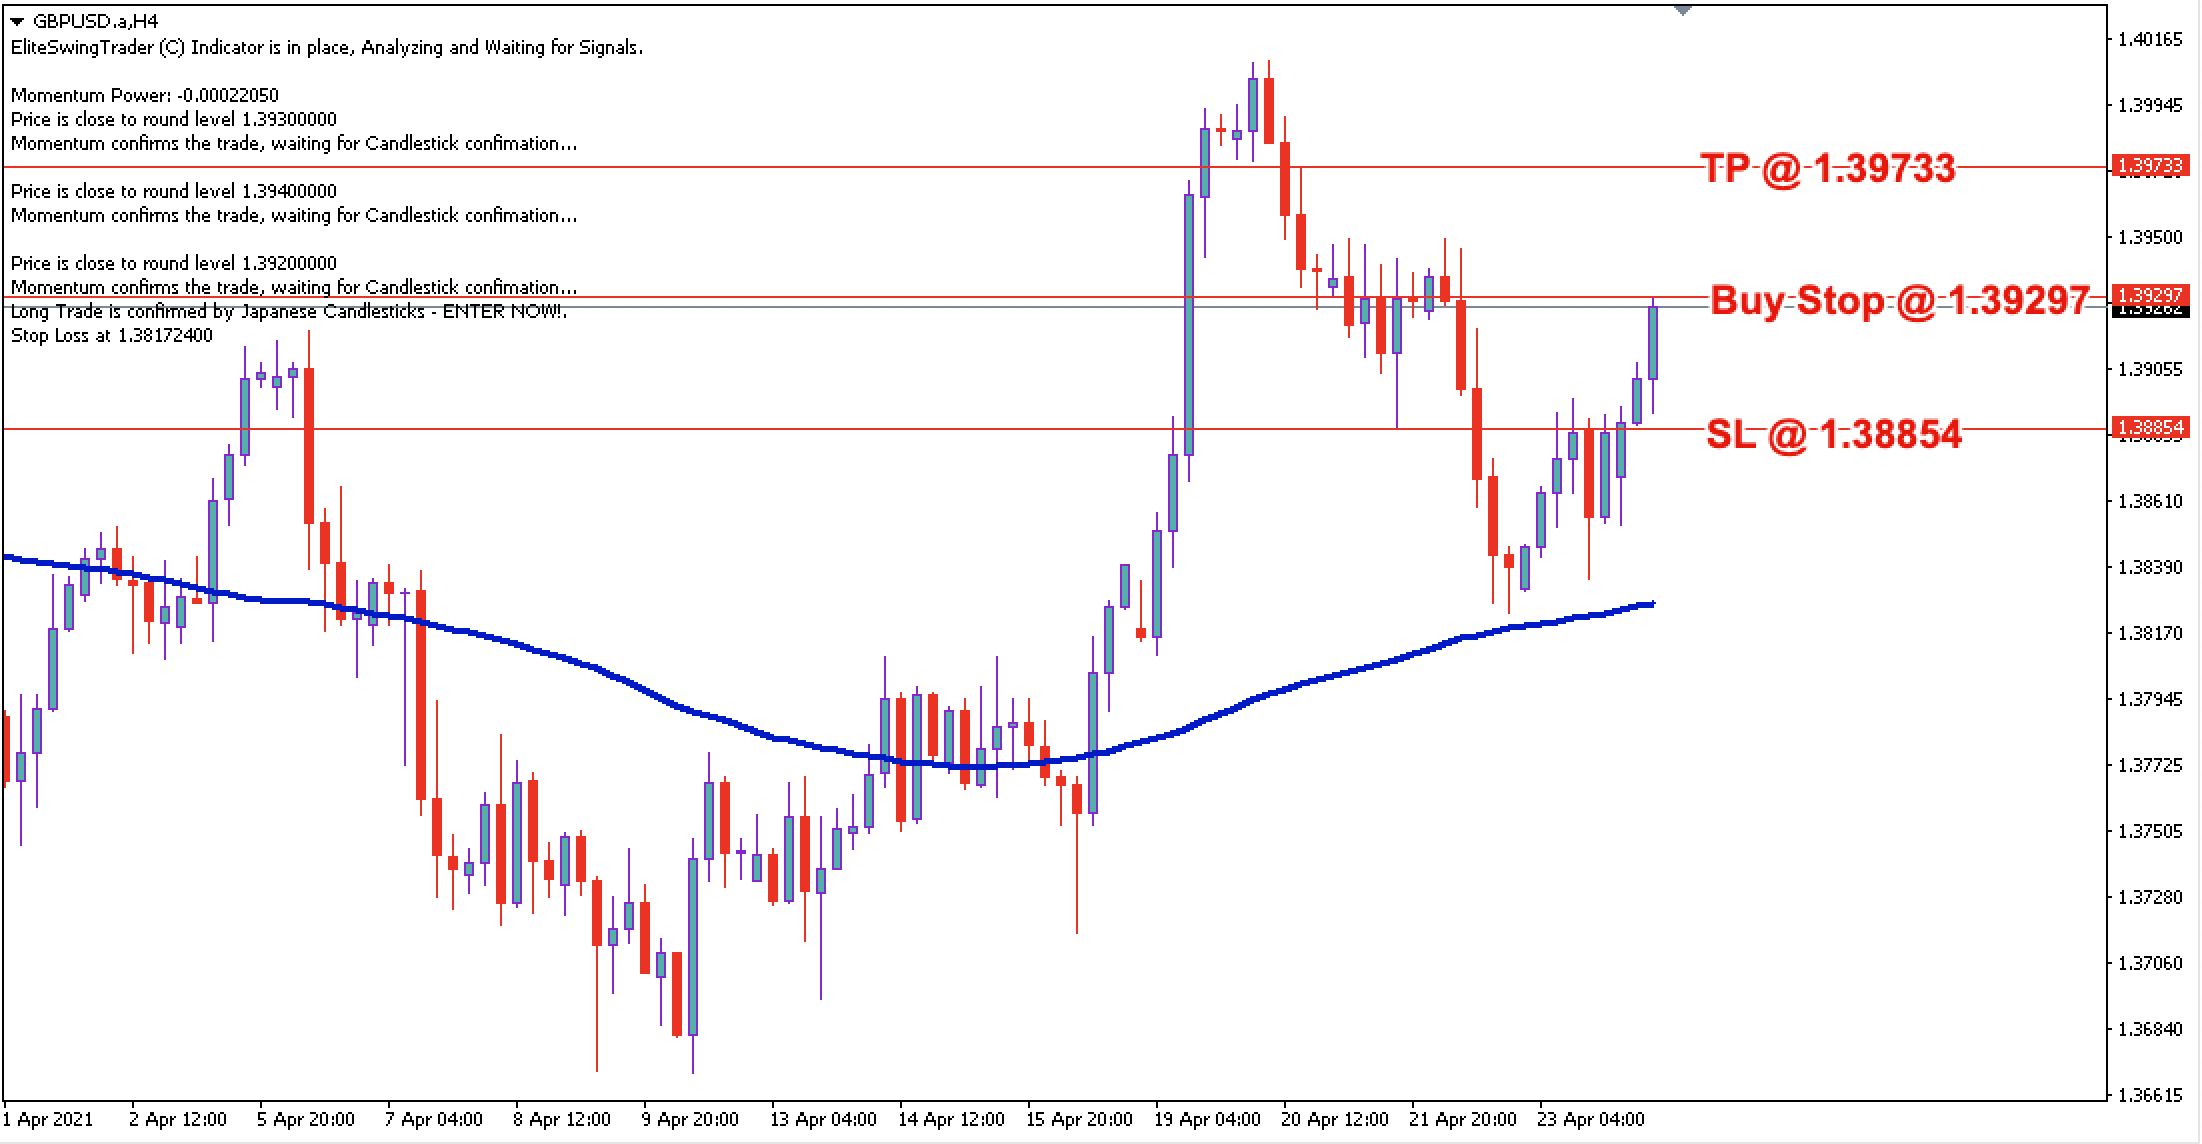 GBP/USD Daily Price Forecast - 26th April 2021